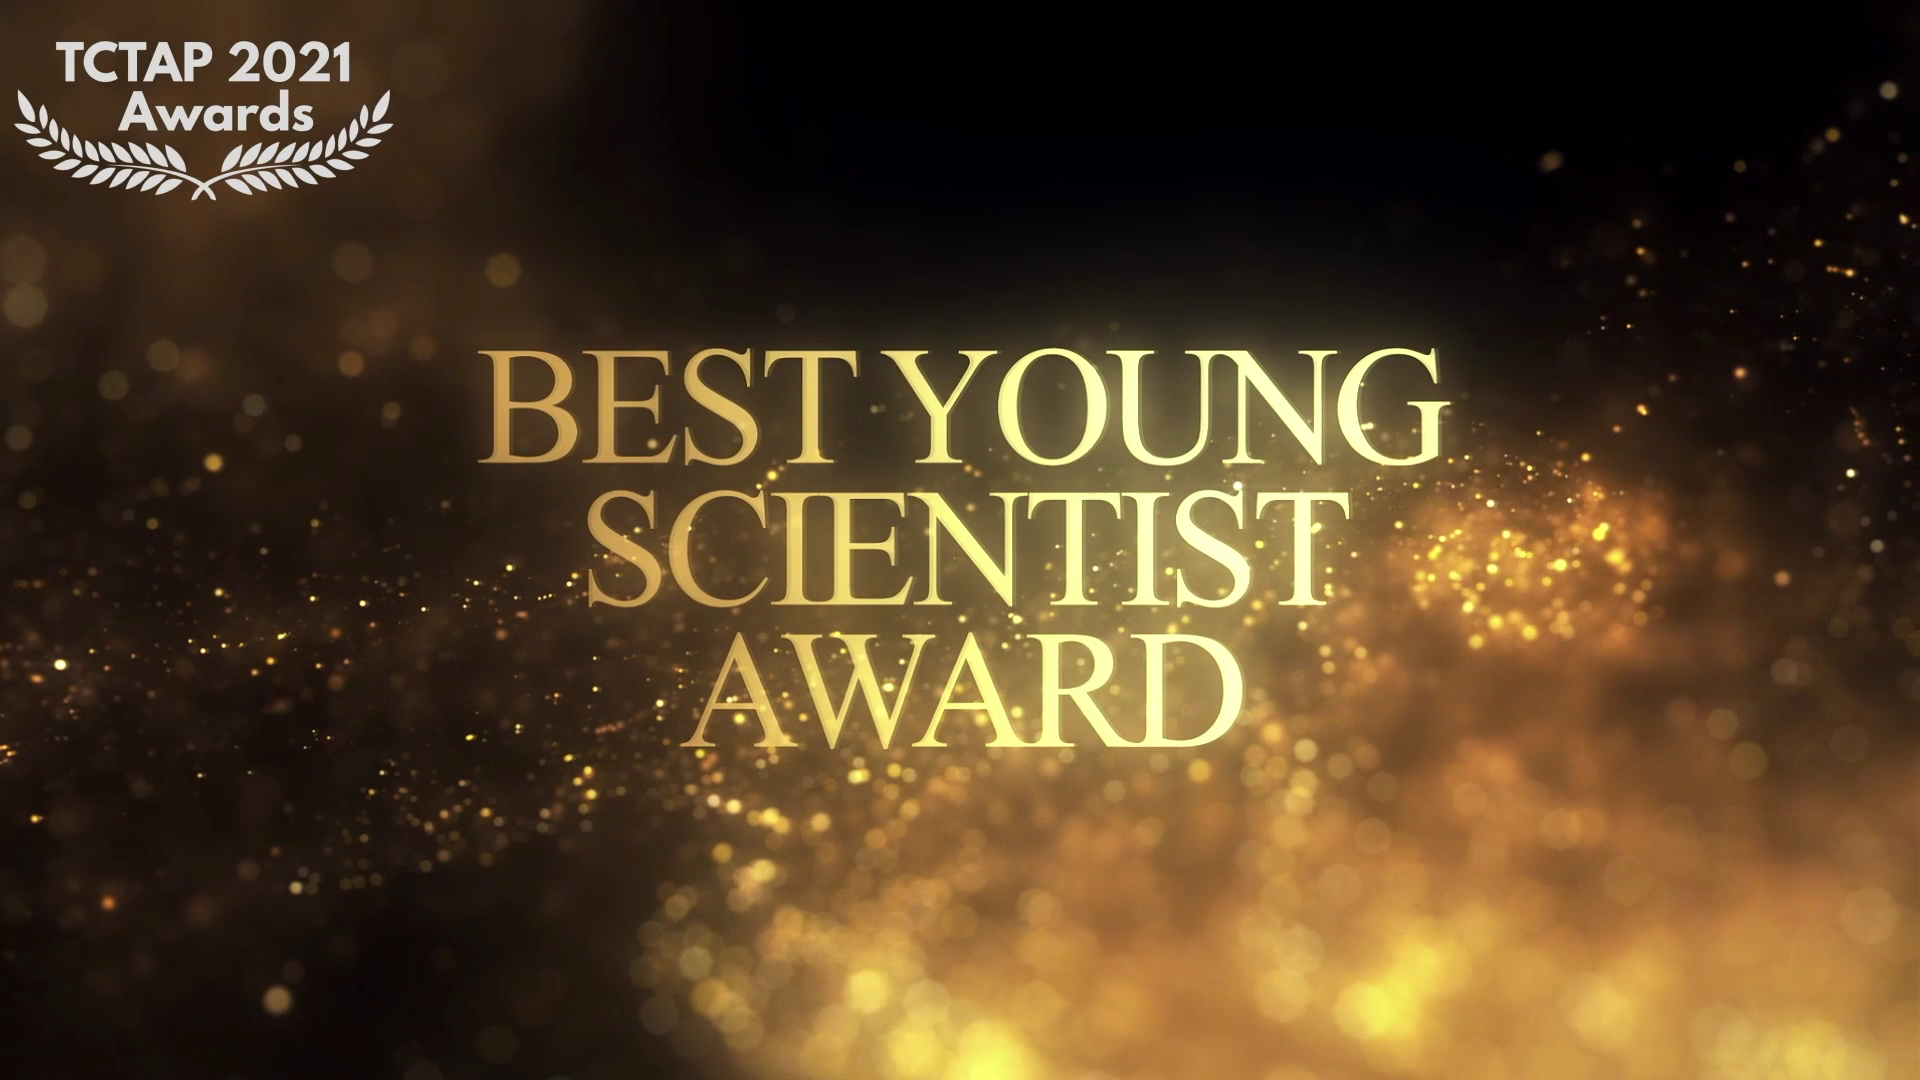 TCTAP Award 2021 - Best Young Scientific Award